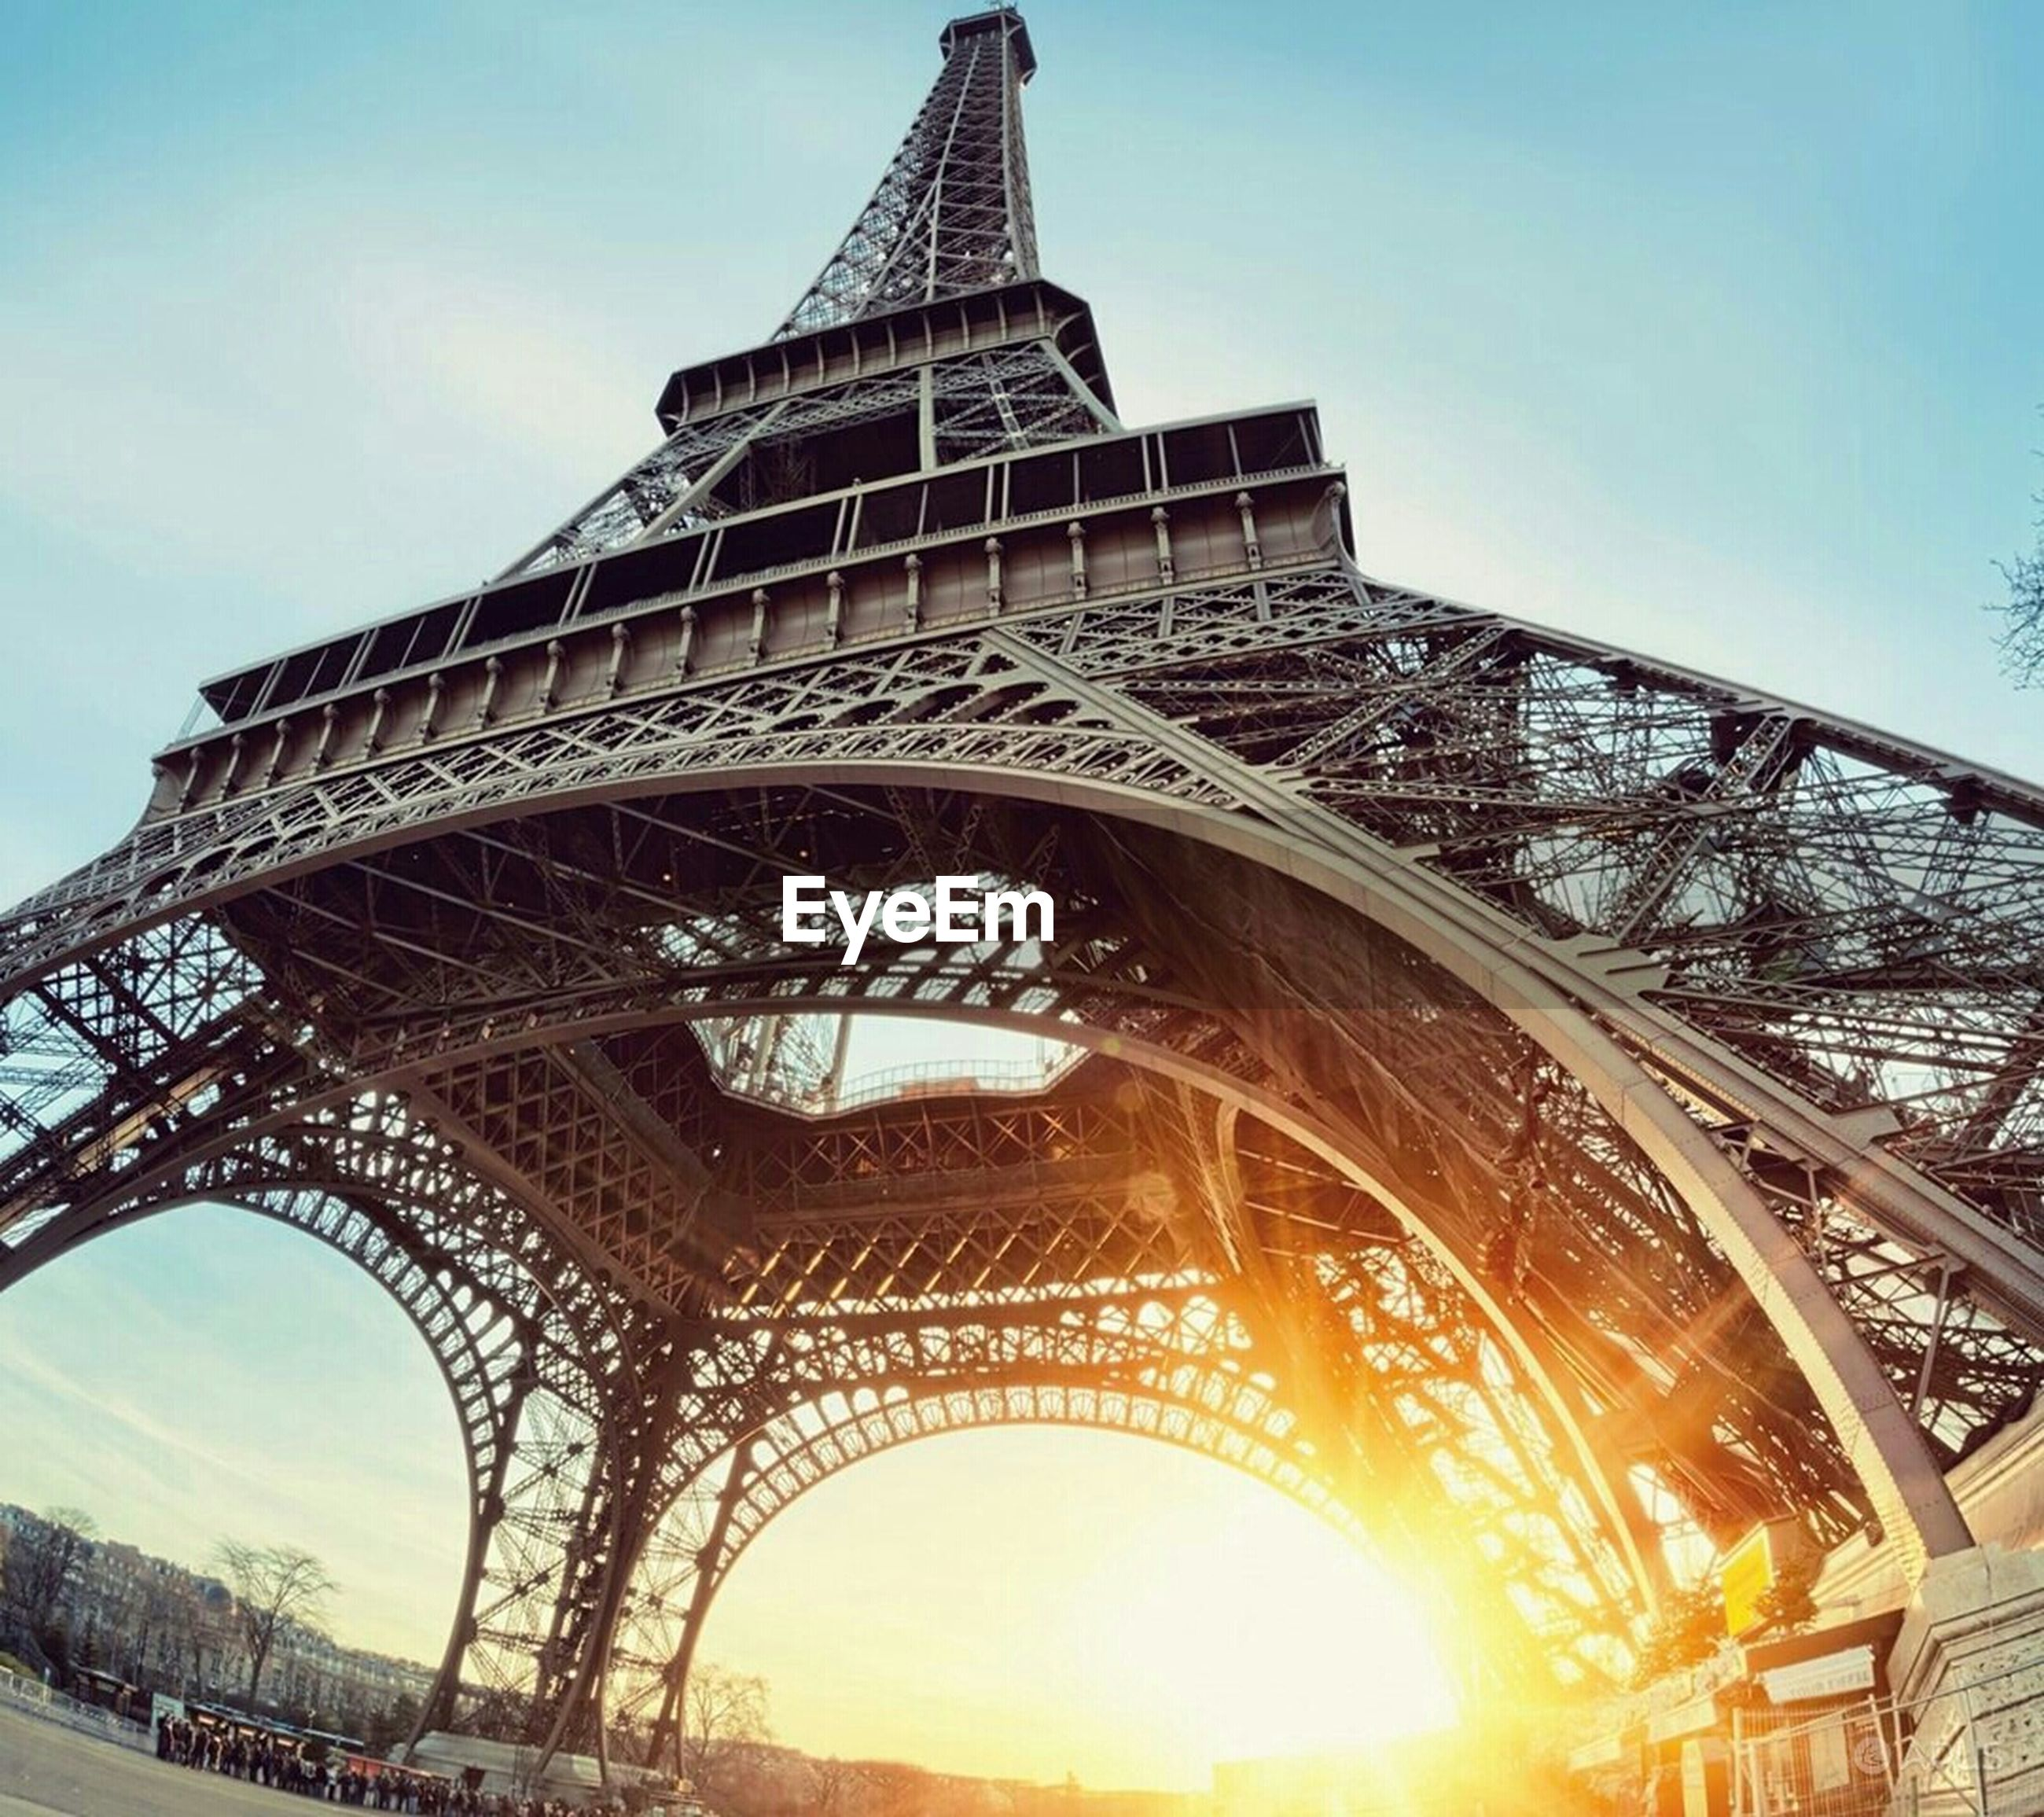 architecture, built structure, famous place, international landmark, travel destinations, tourism, capital cities, eiffel tower, travel, low angle view, tower, culture, building exterior, metal, engineering, city, bridge - man made structure, sky, tall - high, history